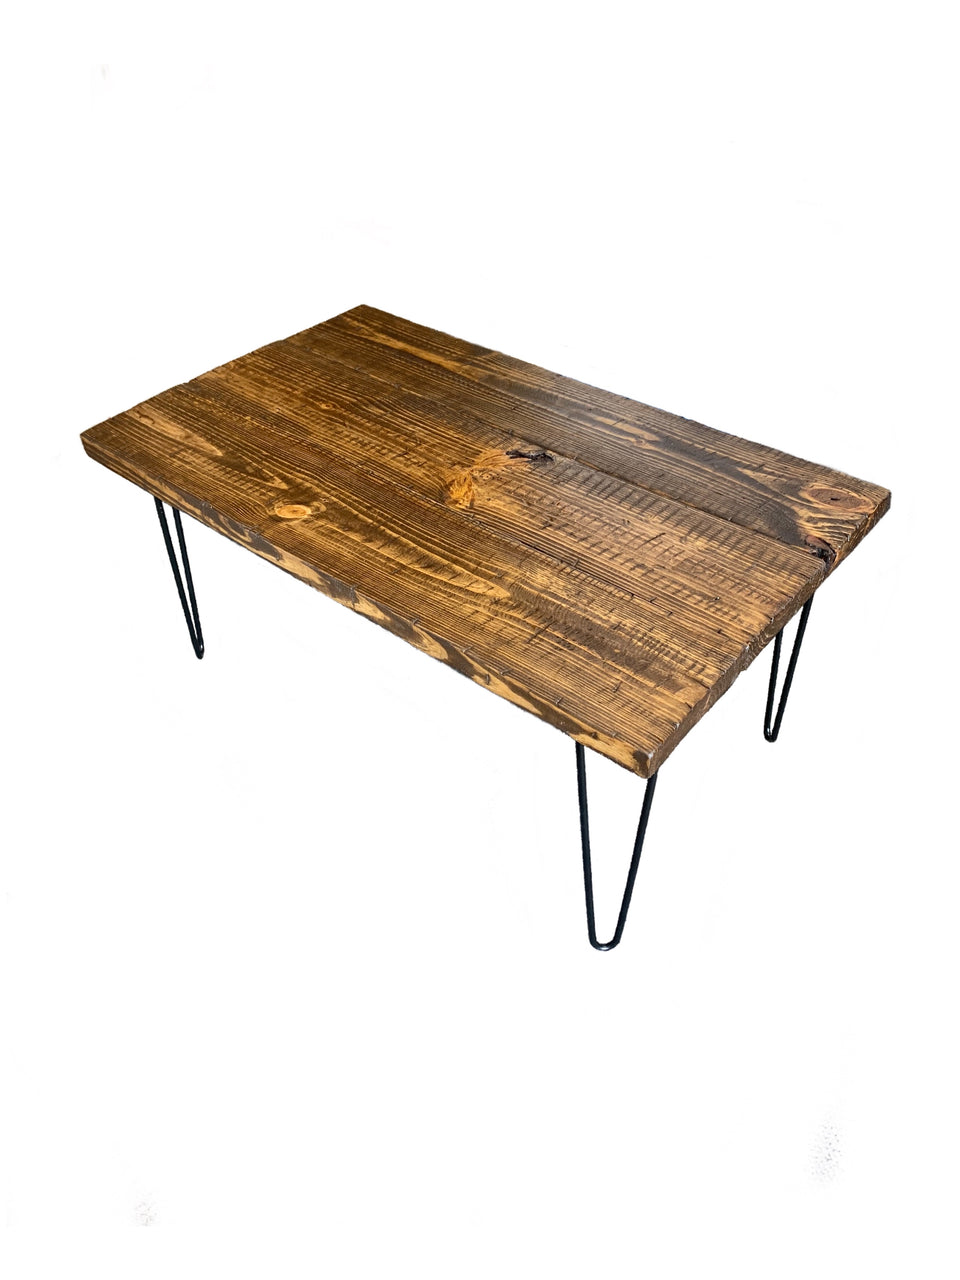 ThorWoods Handmade Rustic Distressed Real Wood Coffee Table Hairpin Legs